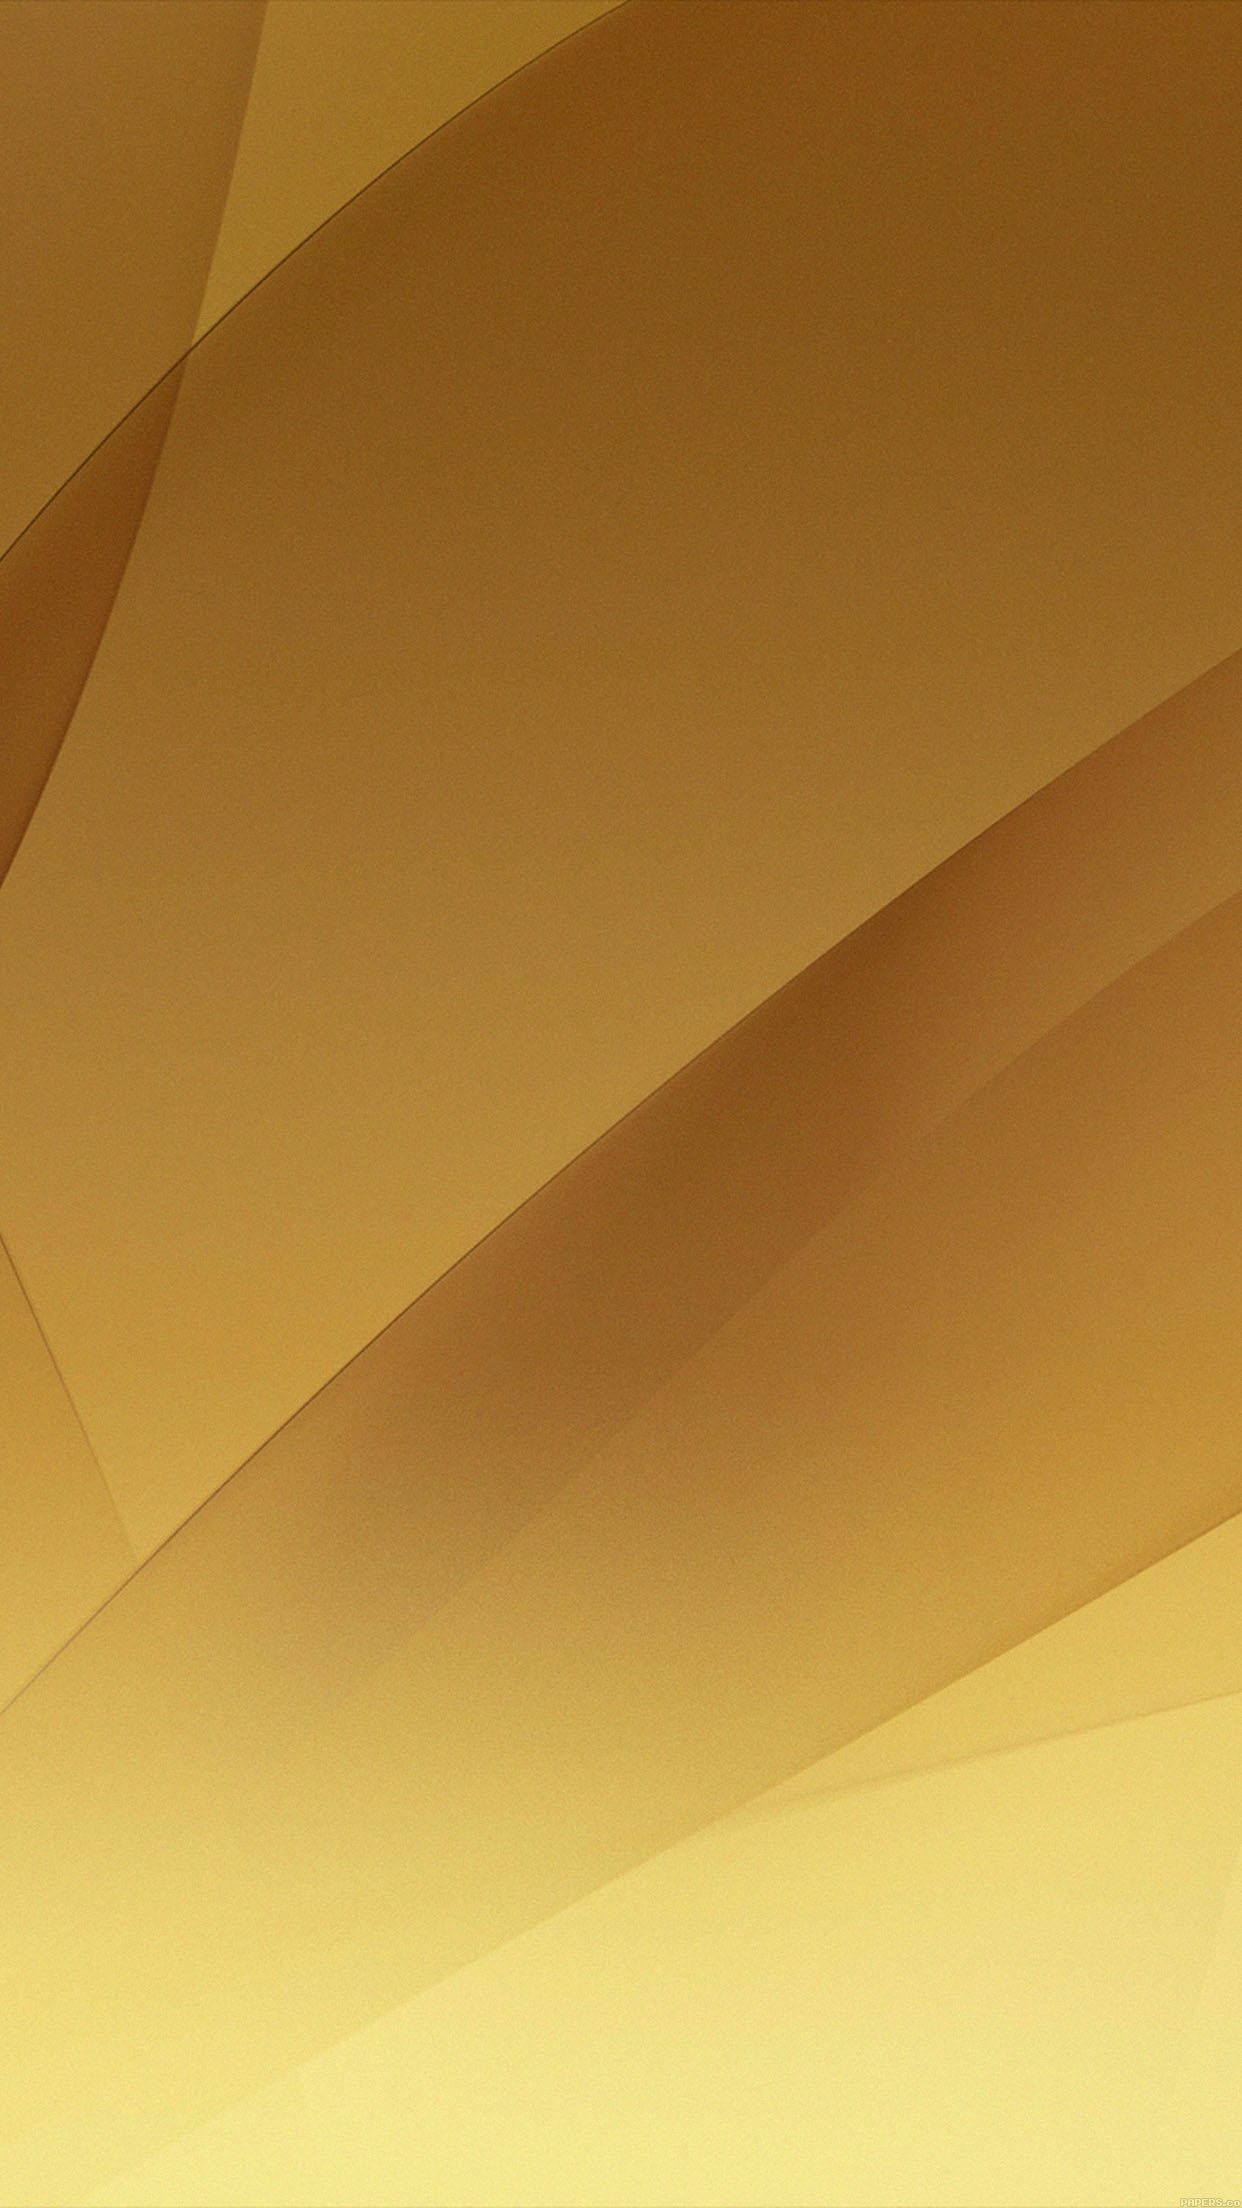 ... .co-vb54-wallpaper-aqua-gold-pattern-34-iphone6-plus-wallpaper.jpg